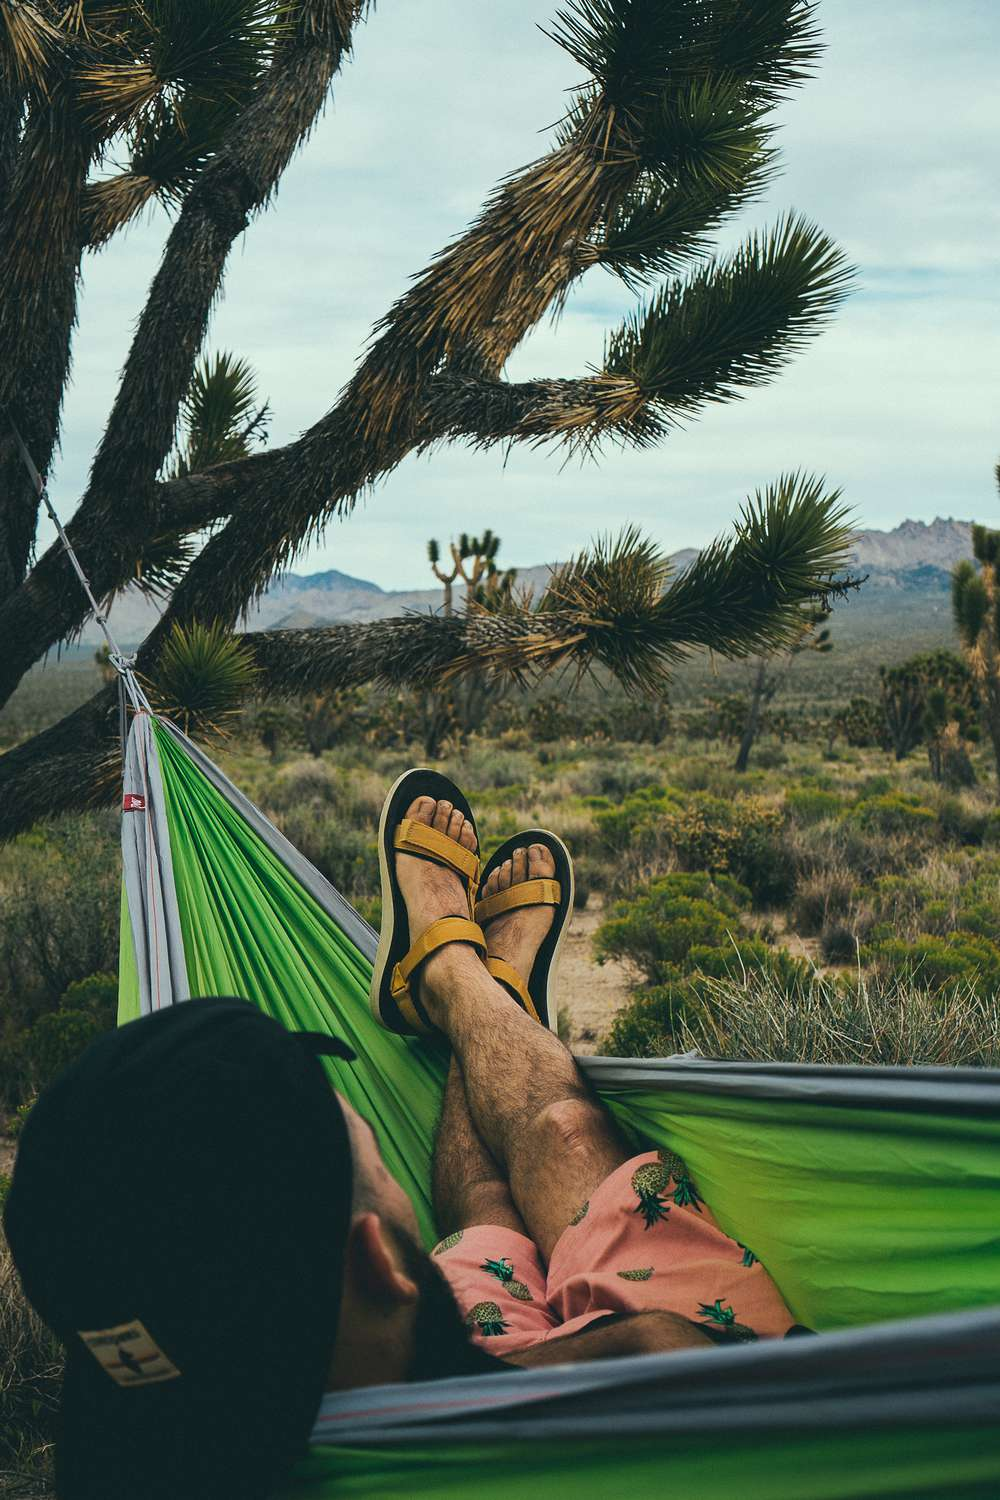 Man sitting in hammock in desert